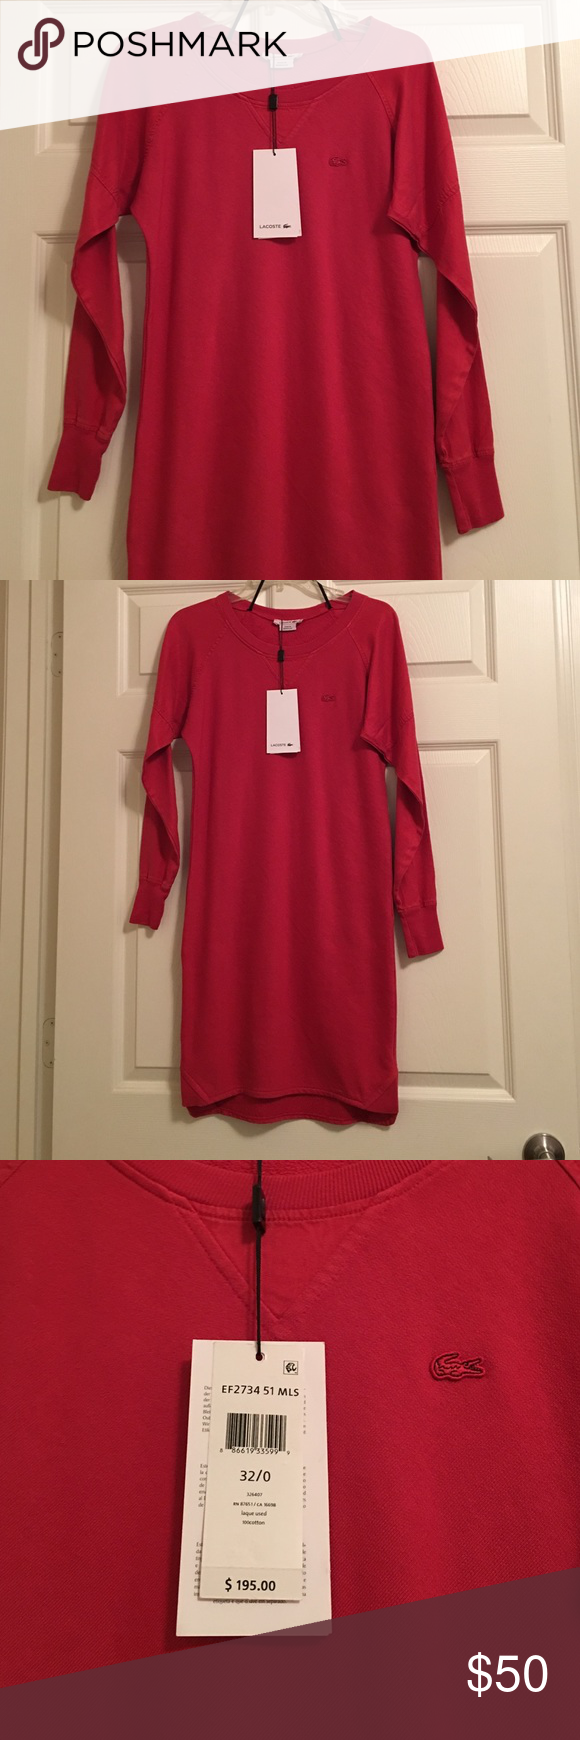 Lacoste 🐊 long sleeve dress nwt price is firm Brand new dress nwt Lacoste Dresses Long Sleeve